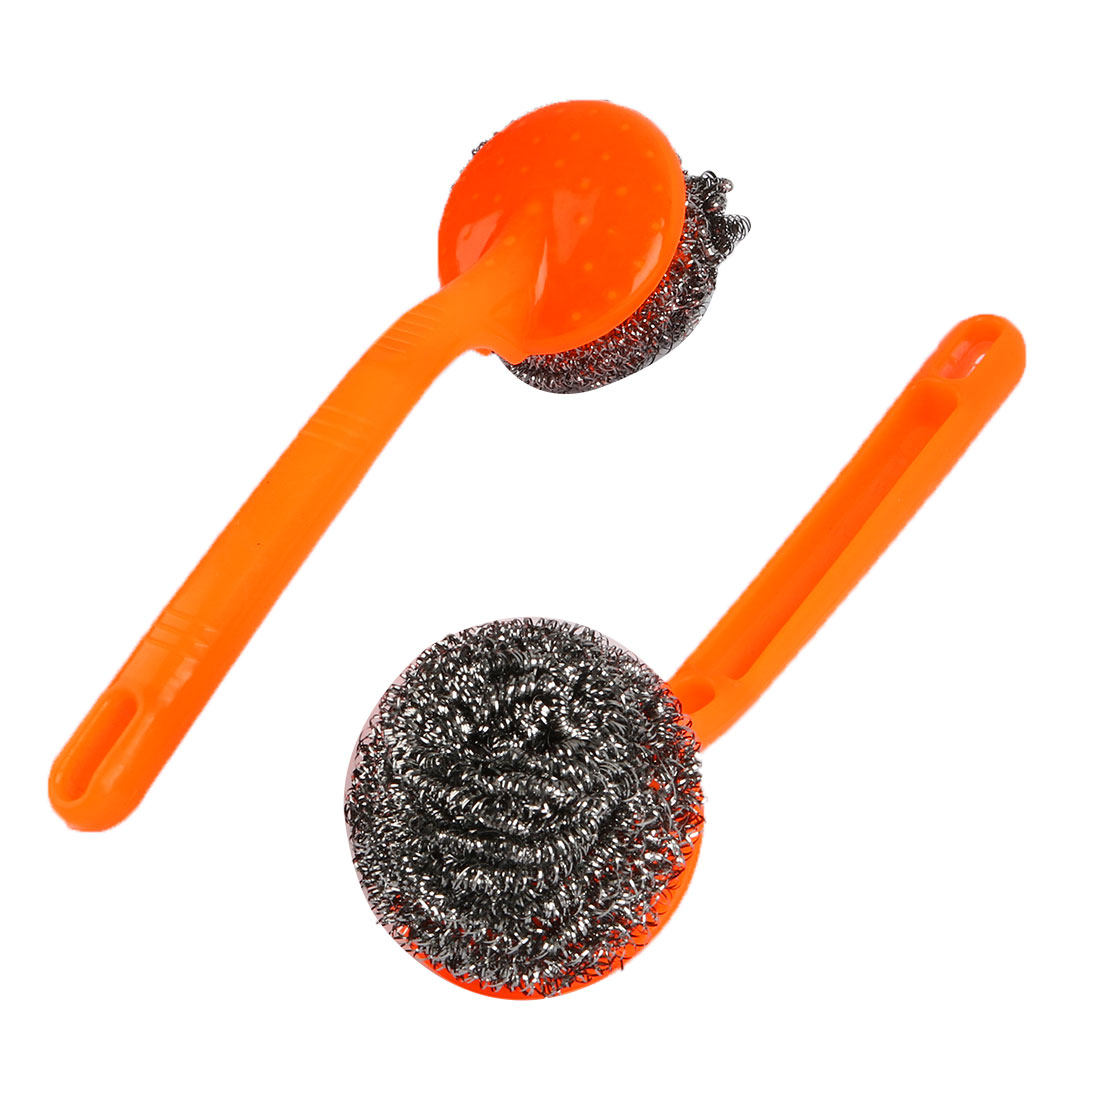 2pcs Kitchen Plastic Grip Bowl Pot Cleaning Steel Wire Ball Scourer Brush Yellow